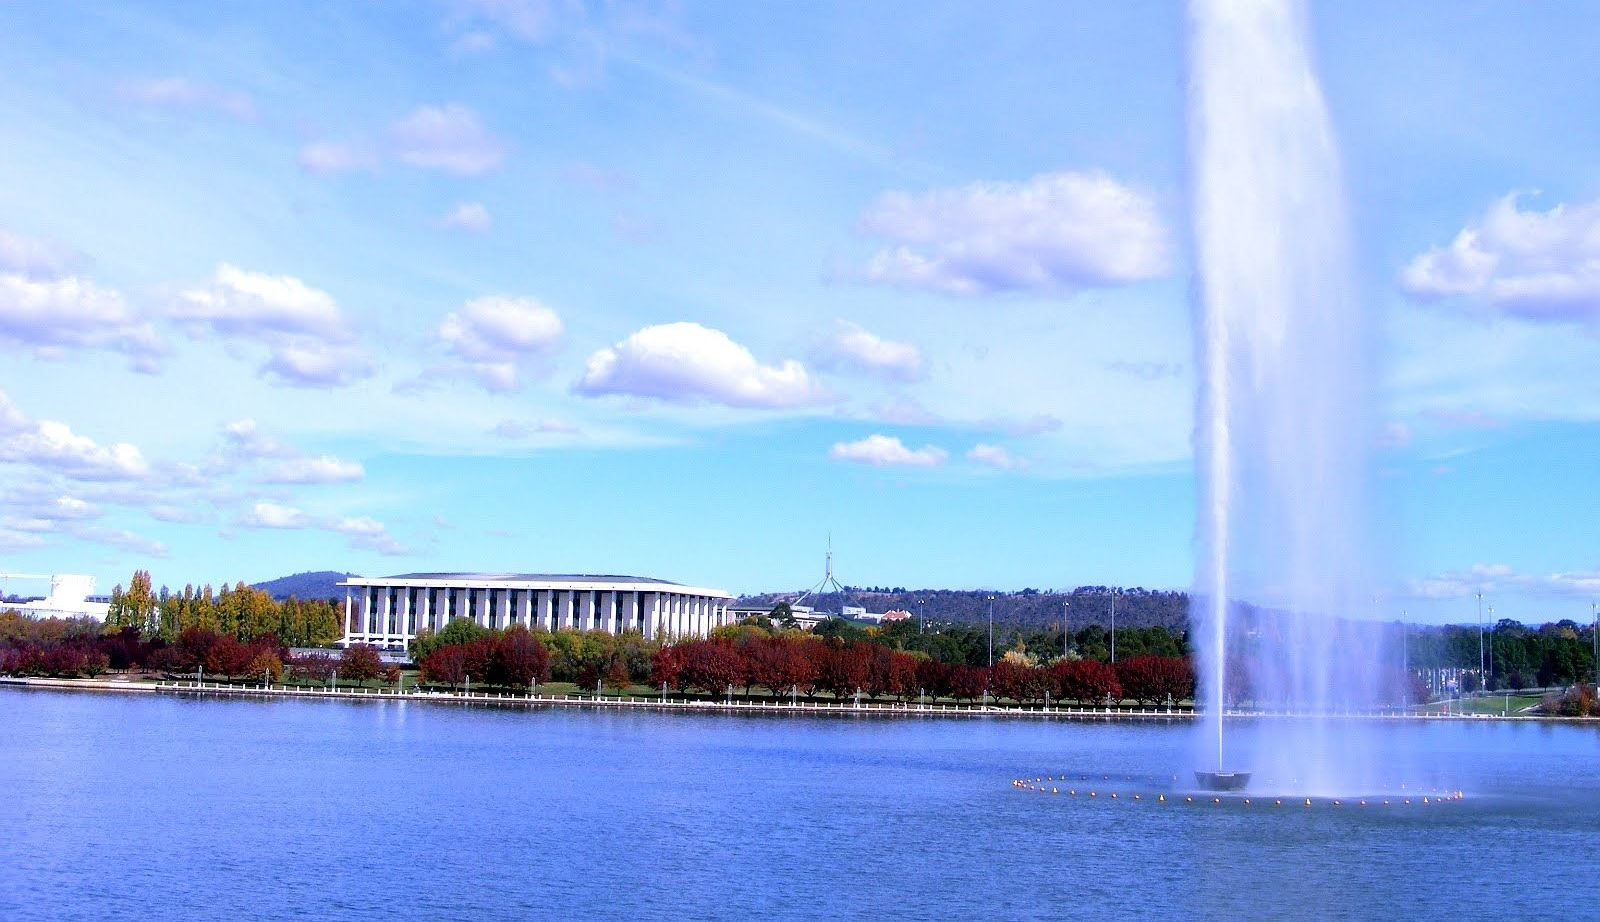 canberra short term holiday accommodation national library parliament house hotel motel budget